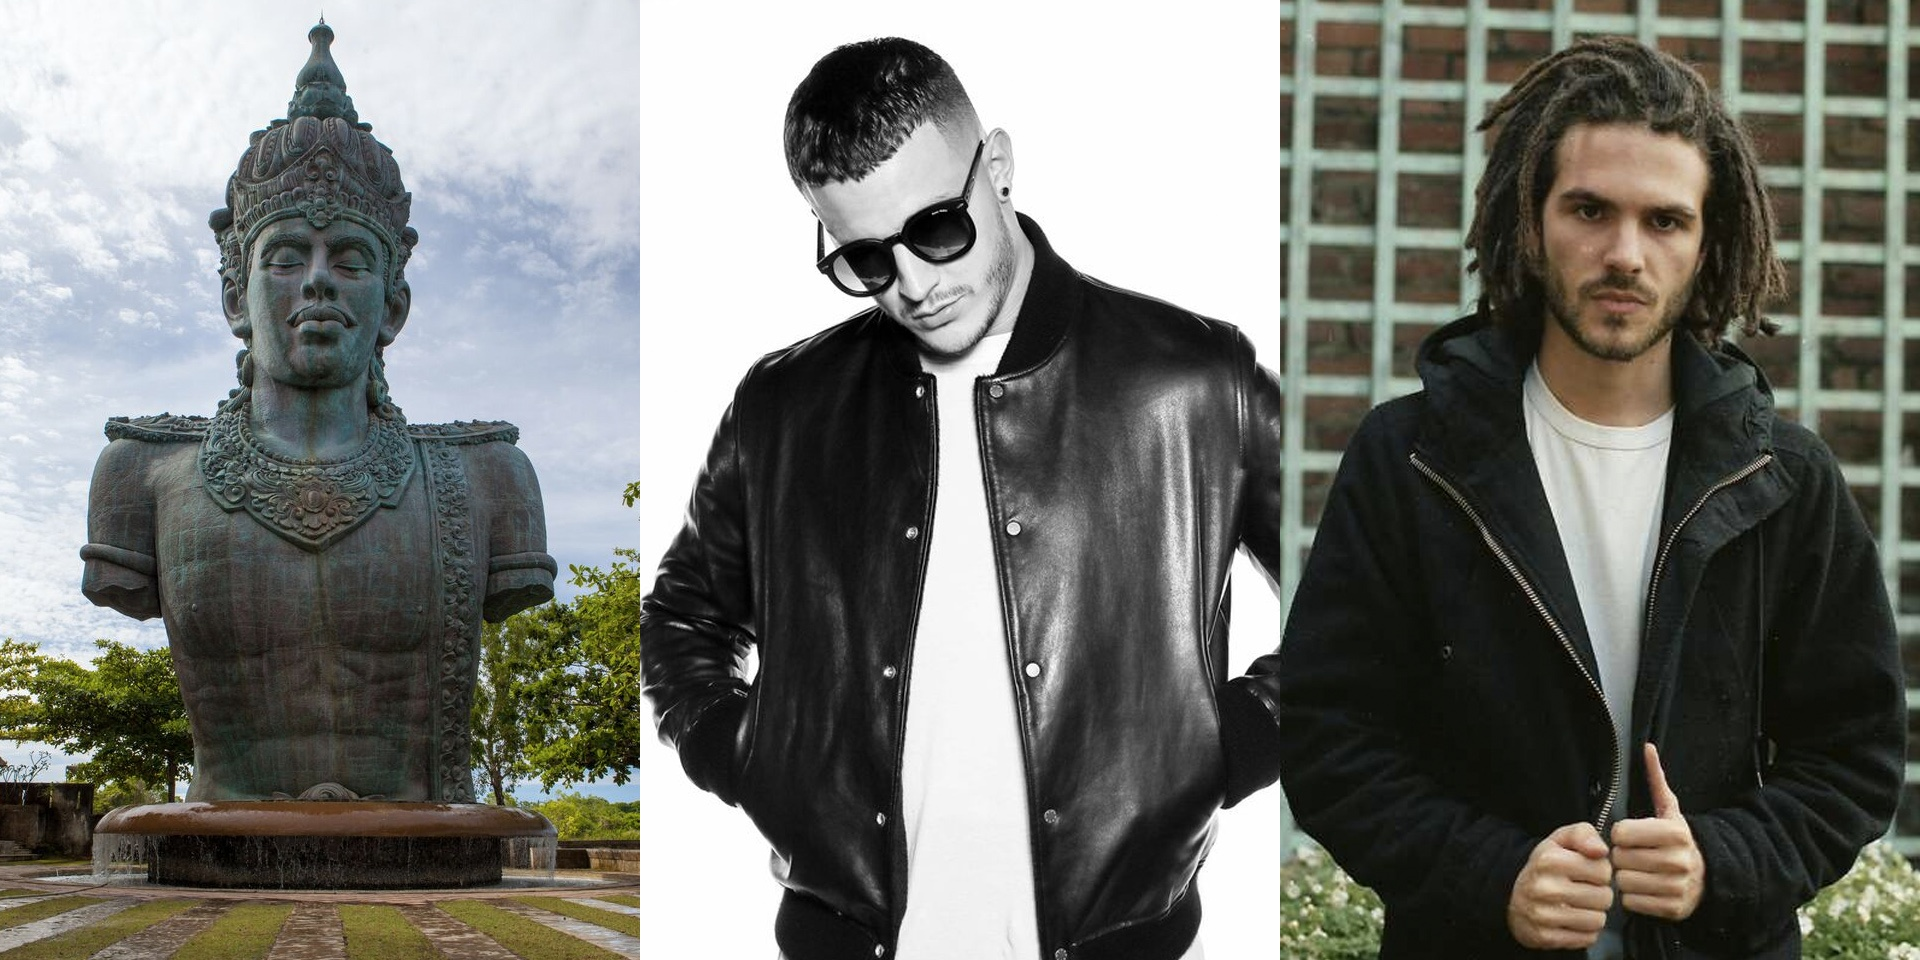 SAGA Music Festival announce phase 1 line-up — DJ Snake, FKJ & more